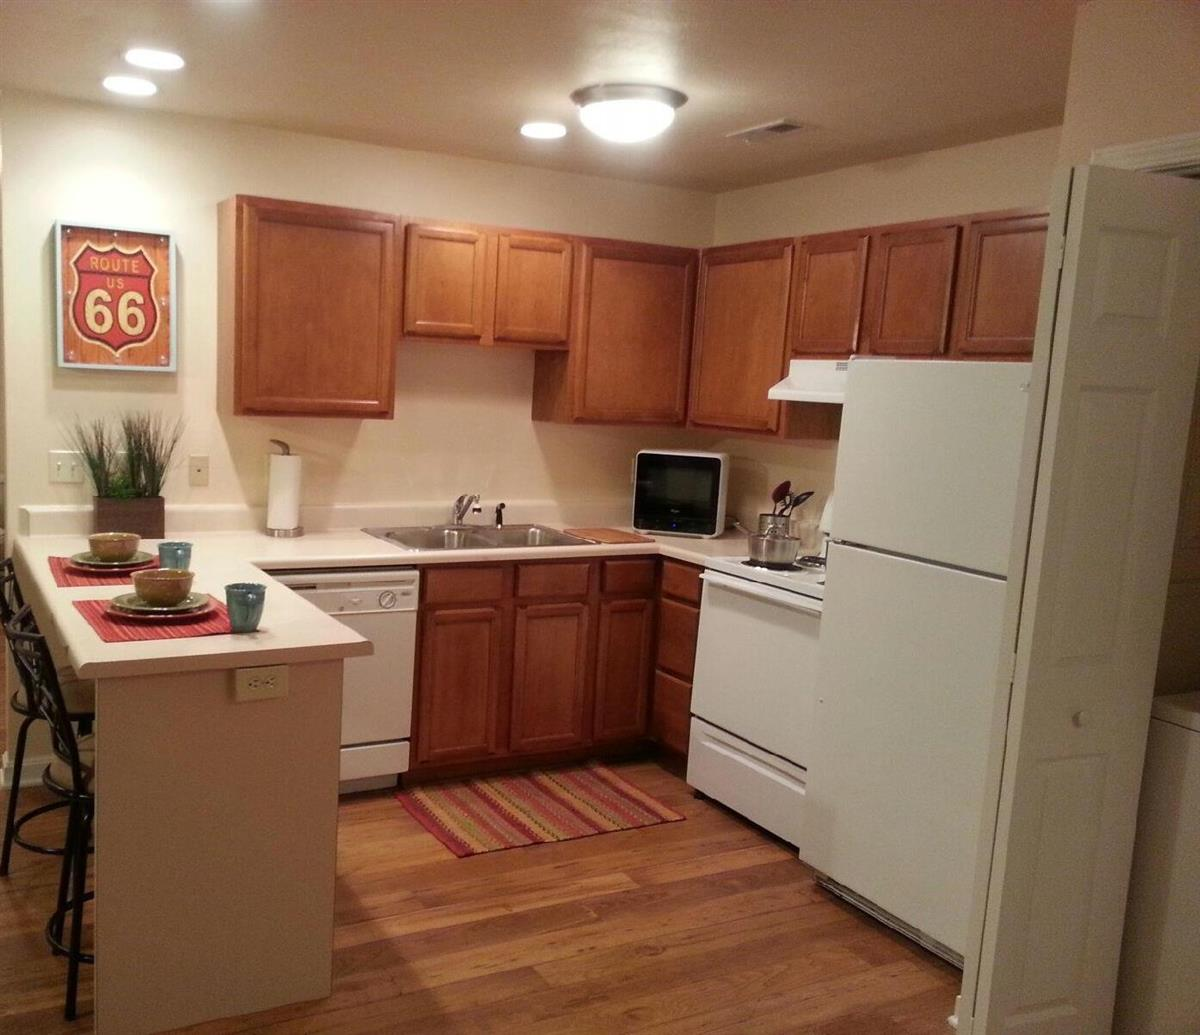 Apartments Evansville In: Eagle Village Student Apartments